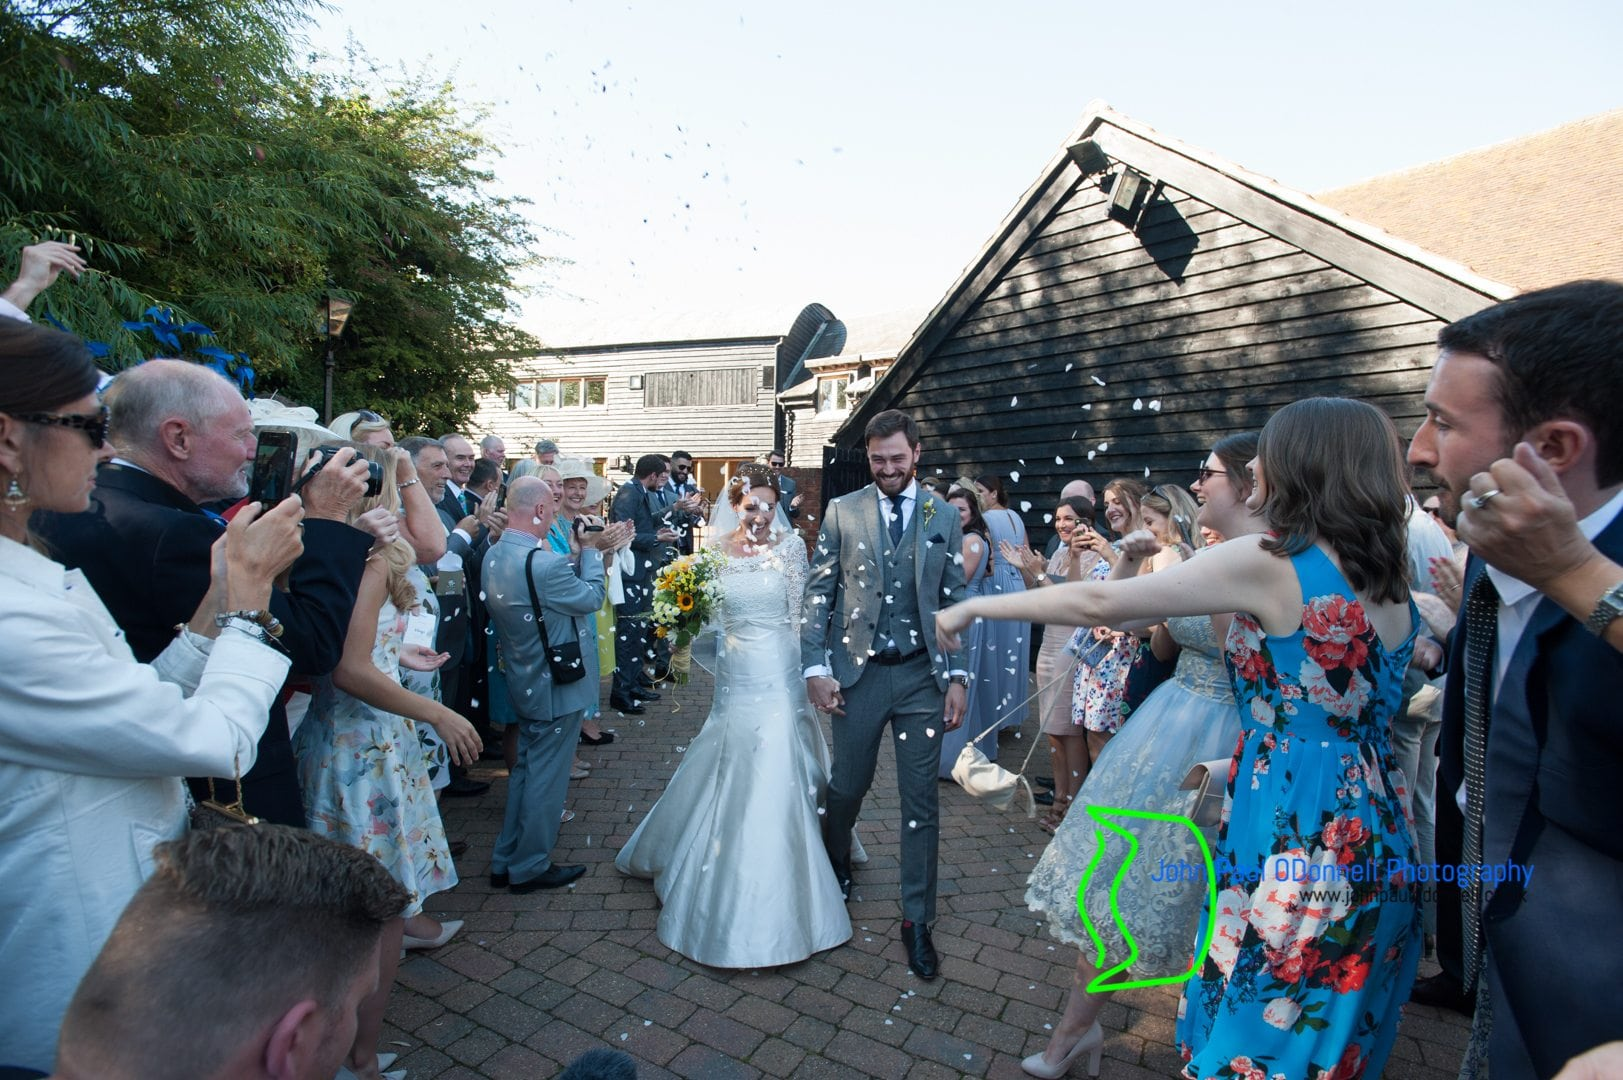 Kara and Simons Wedding at Tewingbury Farm-14